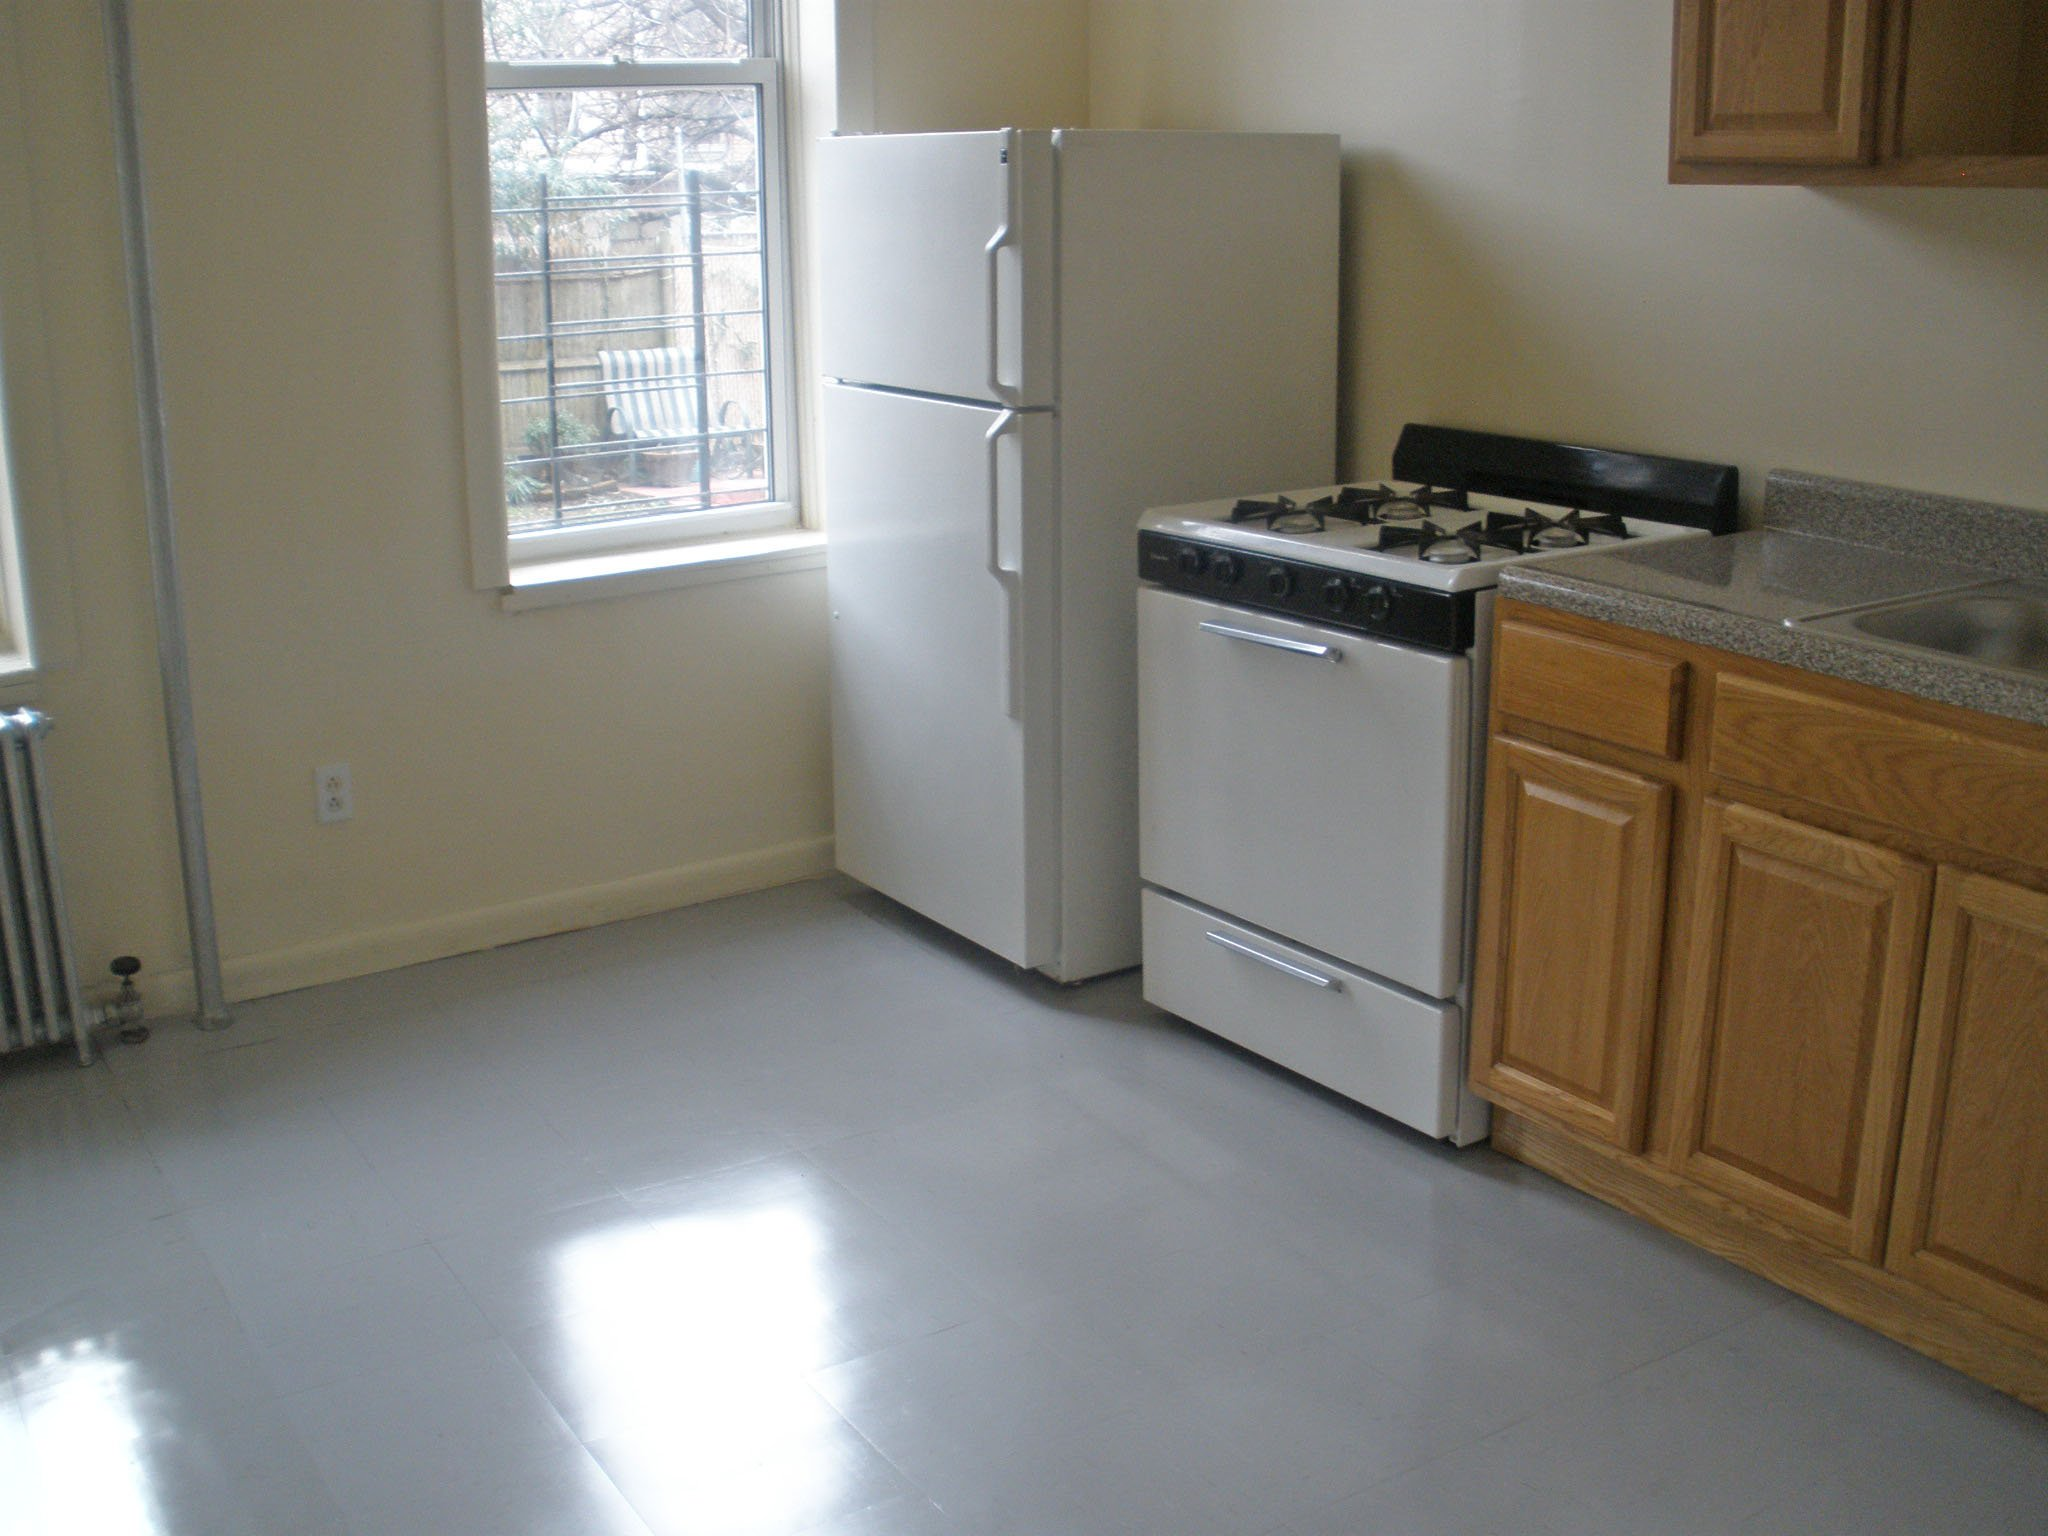 Bedford Stuyvesant 2 Bedroom Apartment For Rent Brooklyn Crg3109